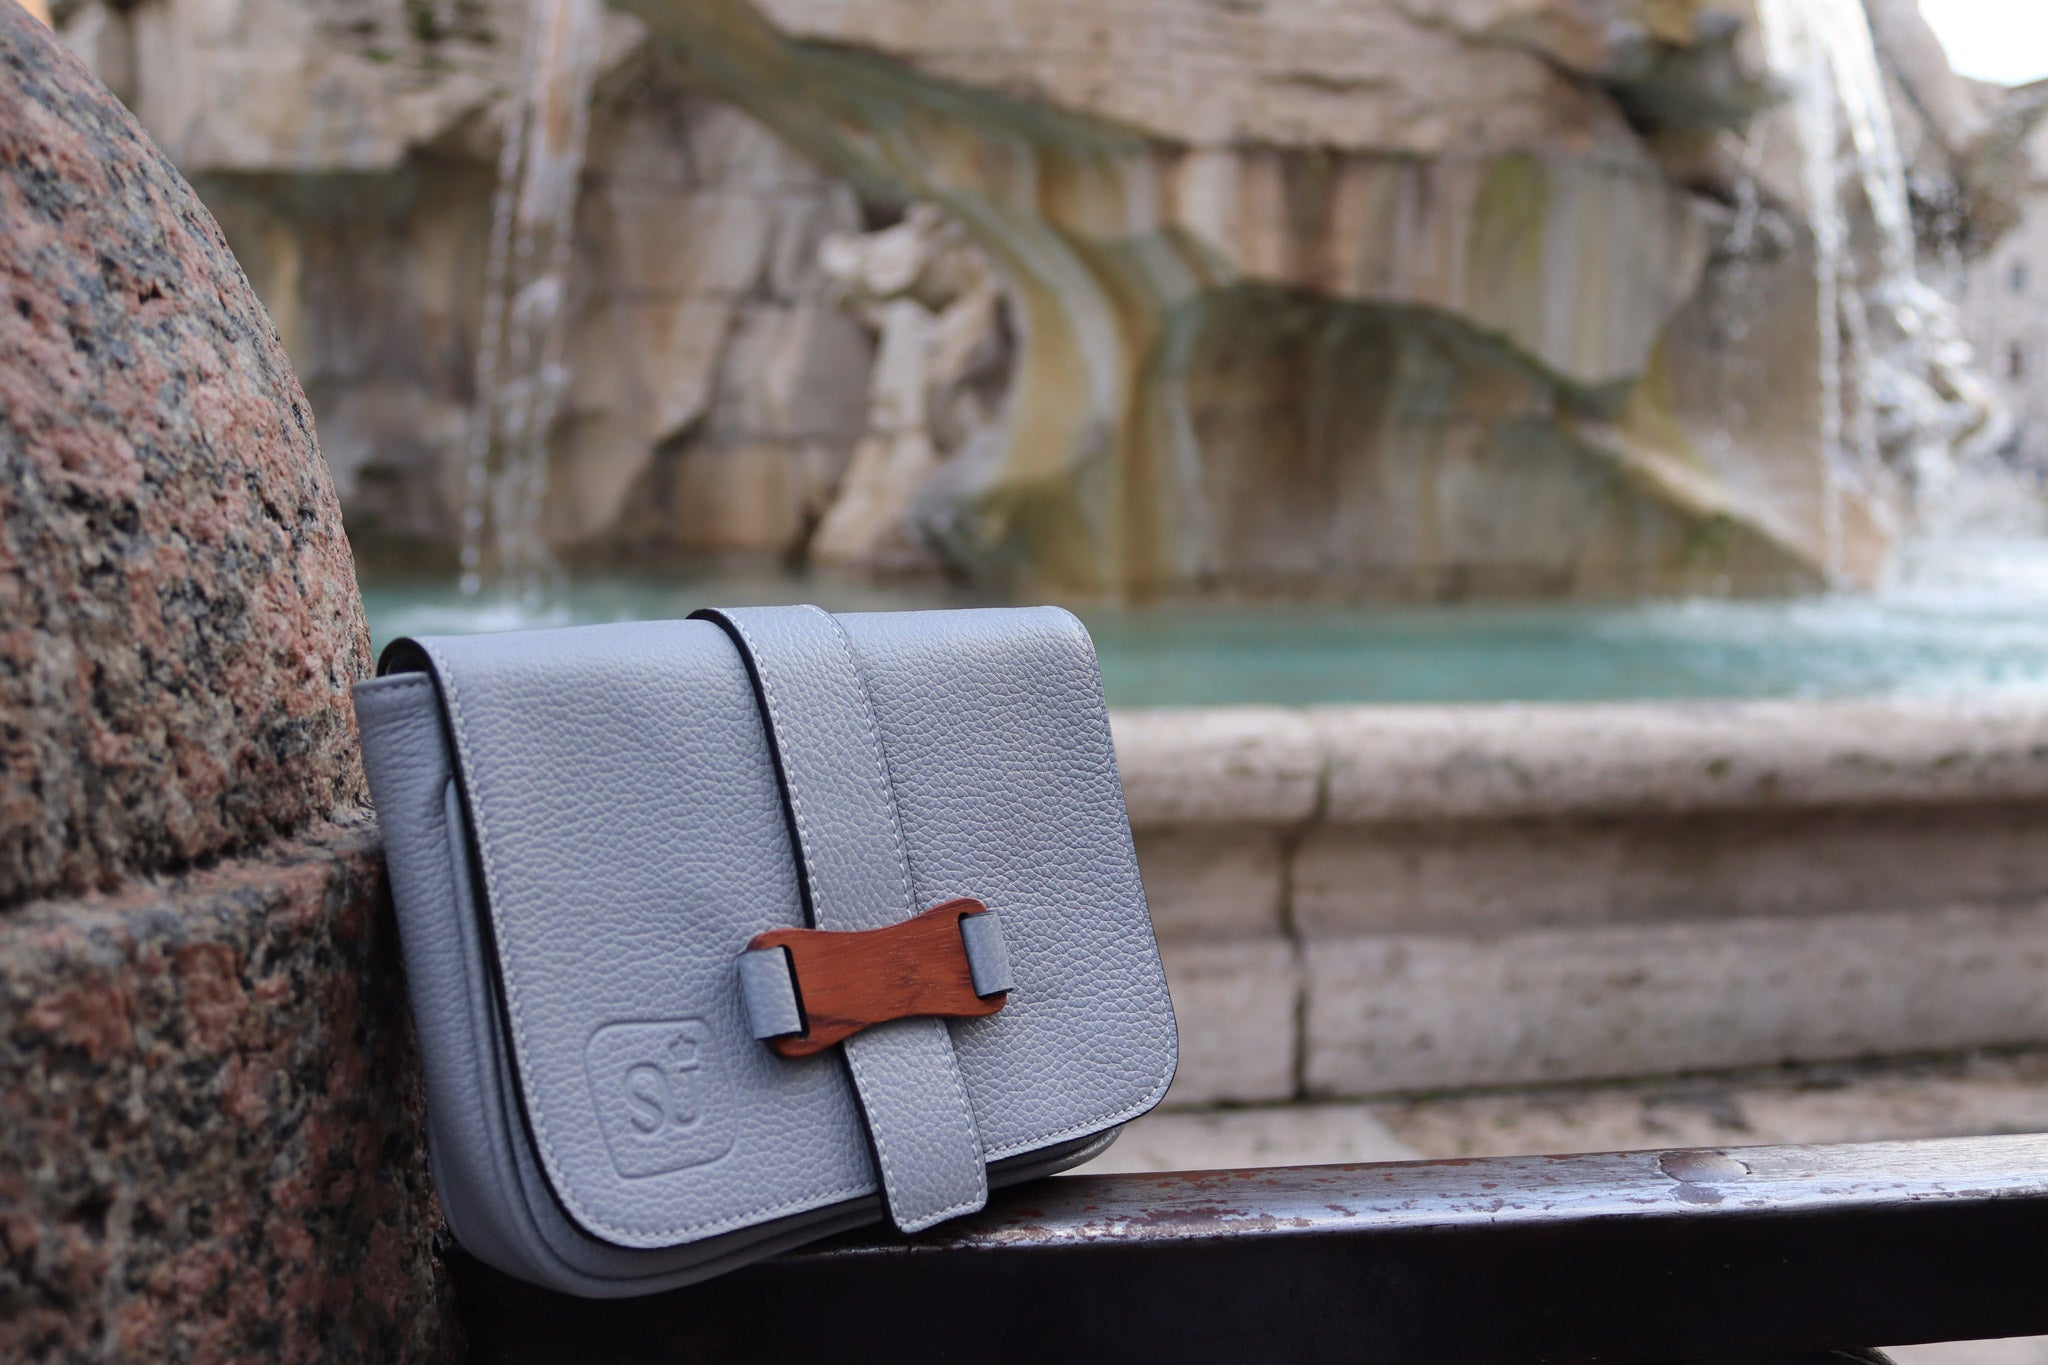 Bags-by-Sumageza-Su-light-grey-crossbody-bag-made of-calf-leather-shown-on-rim-of-famous-fountain-in-Rome-Italy